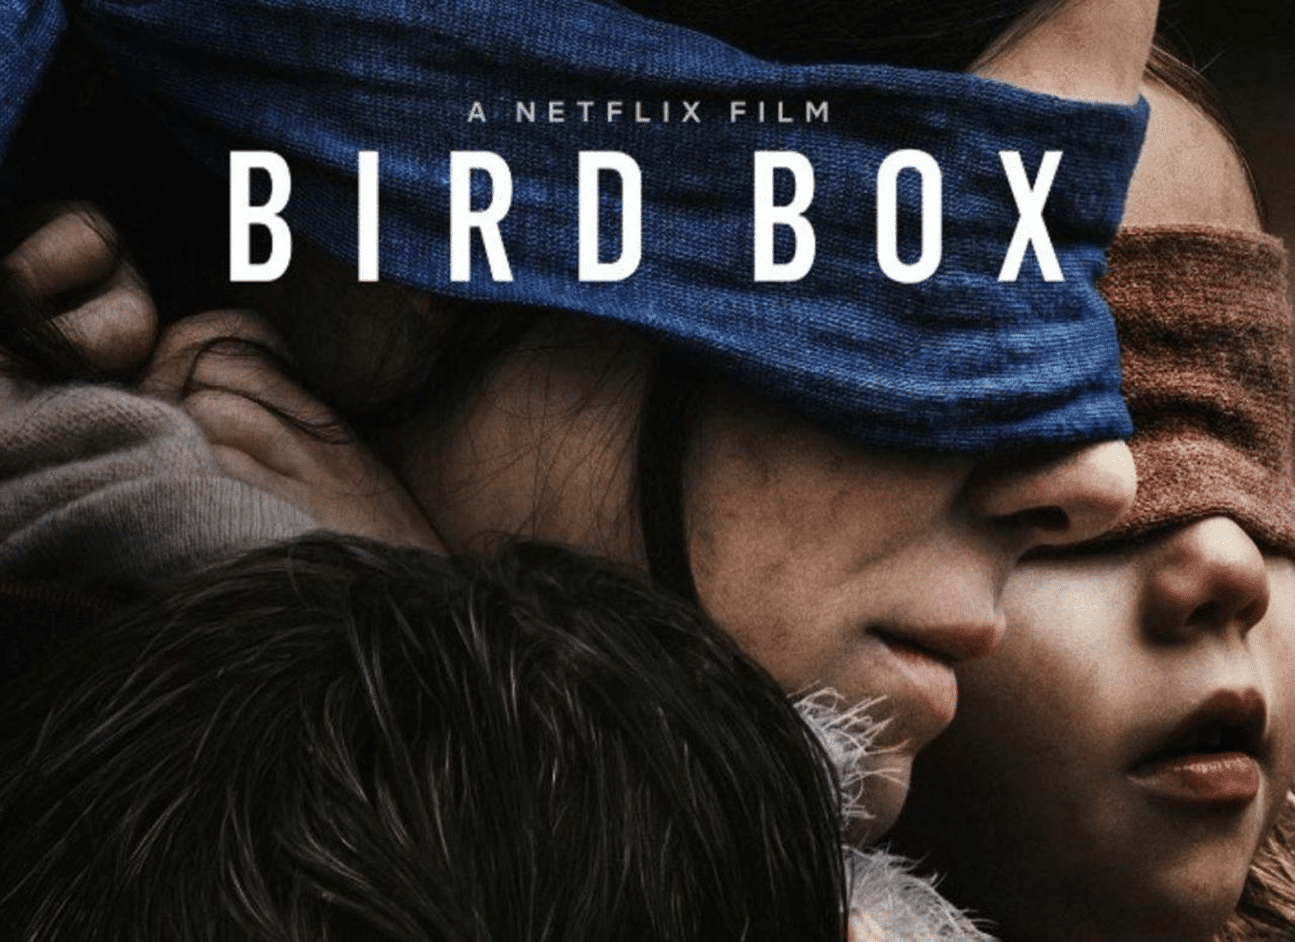 Bird Box Review – A catchy plot, Executed in a lazy style